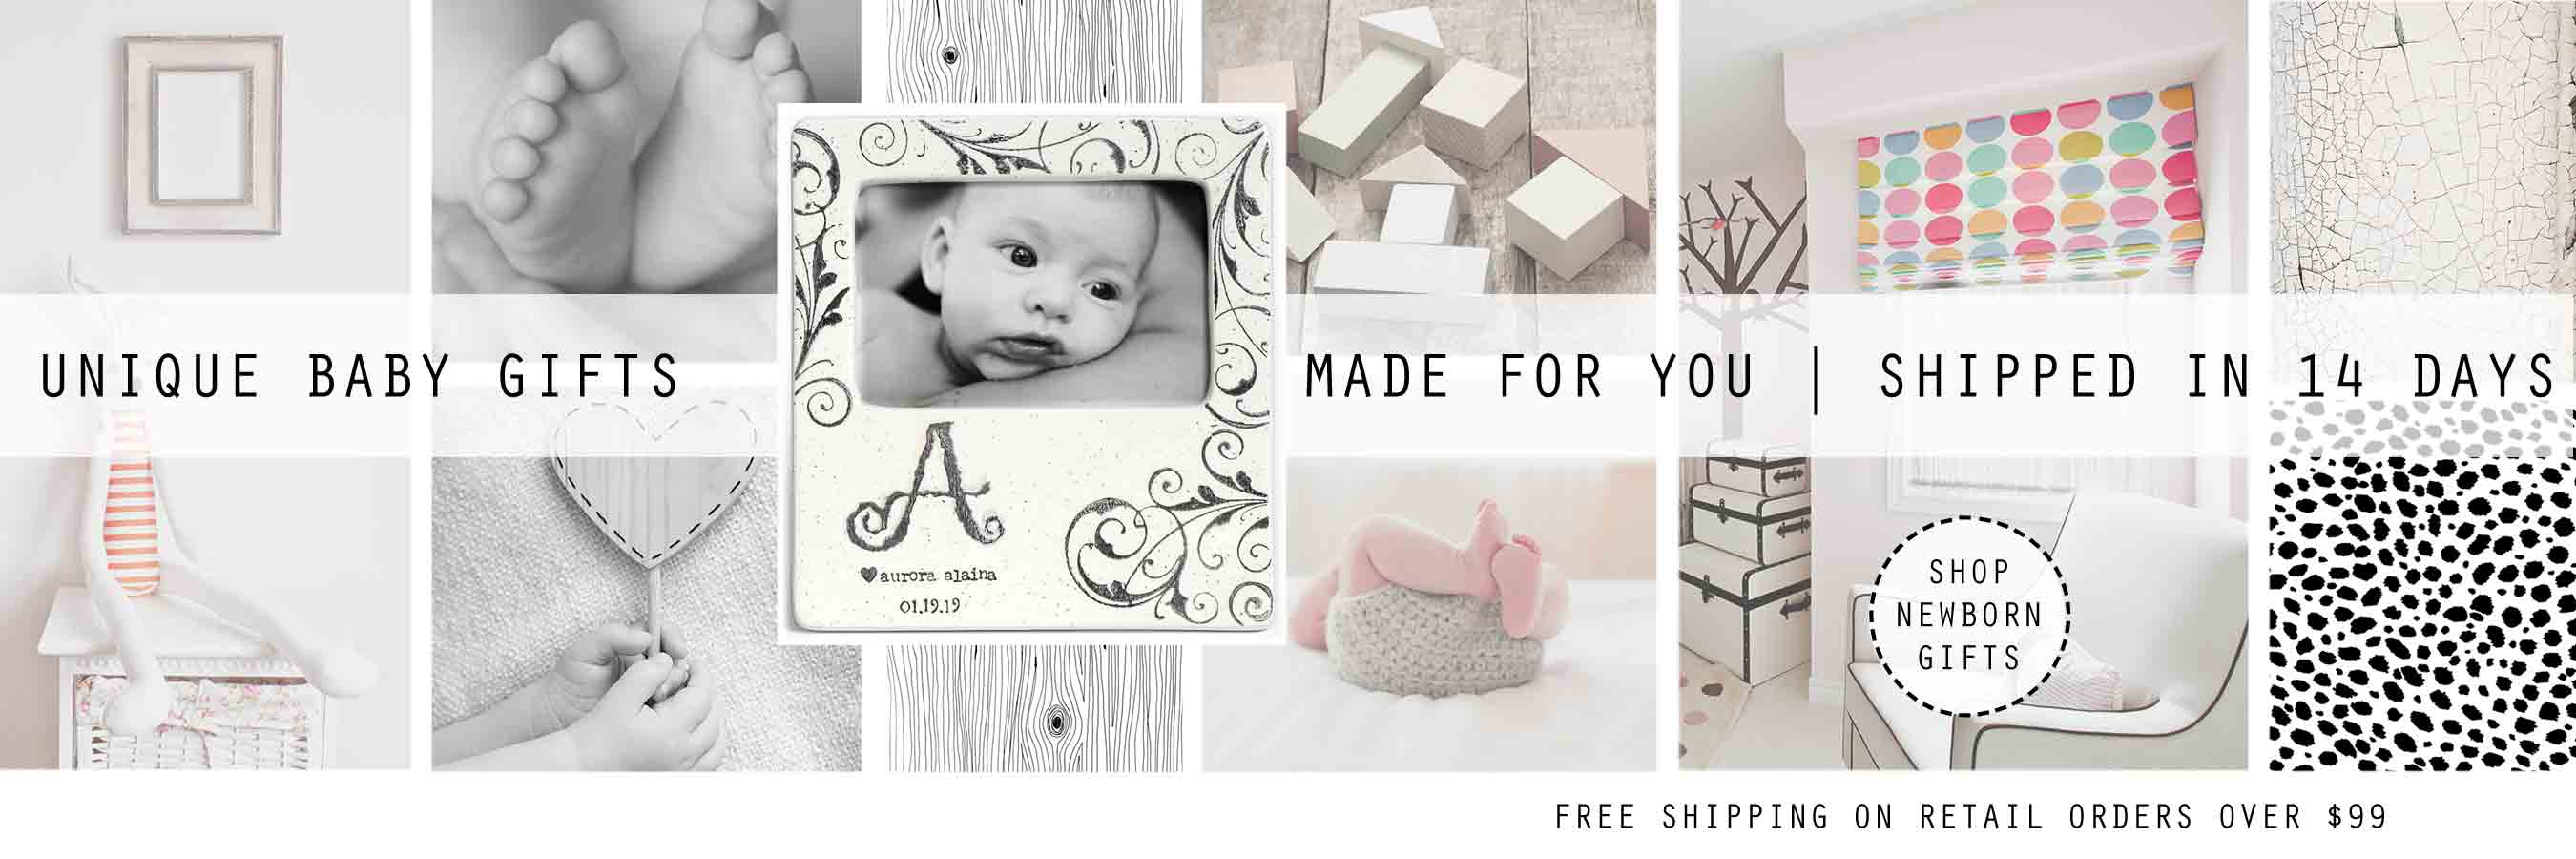 Personalized baby gifts on long island gallery gift and gift museware personalized pottery wedding family baby gifts brands negle gallery negle Images